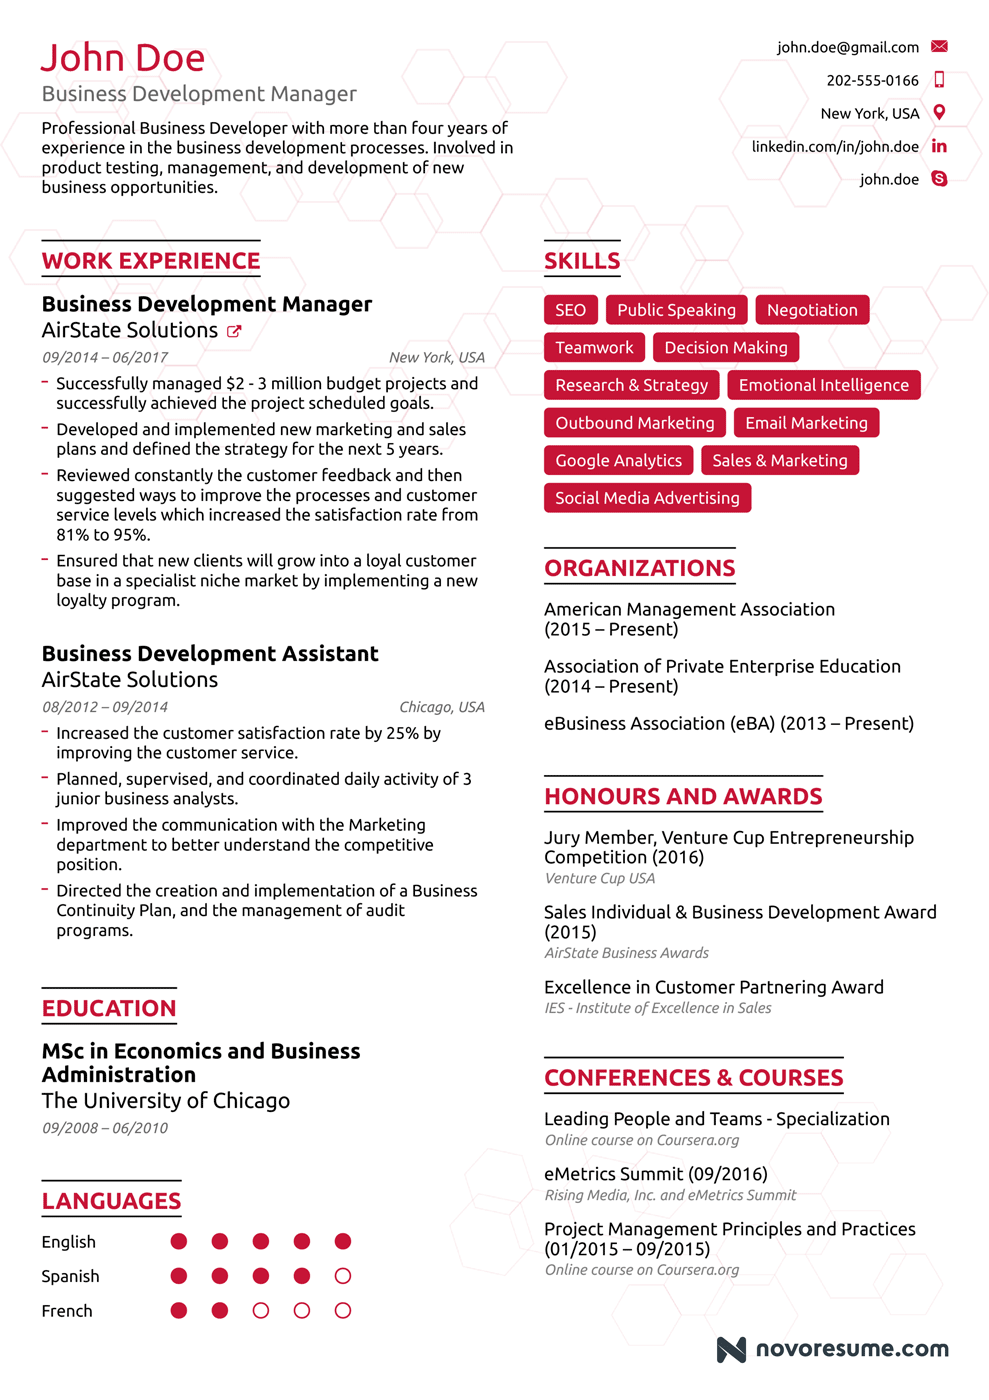 business resume - Business Development Manager Resume